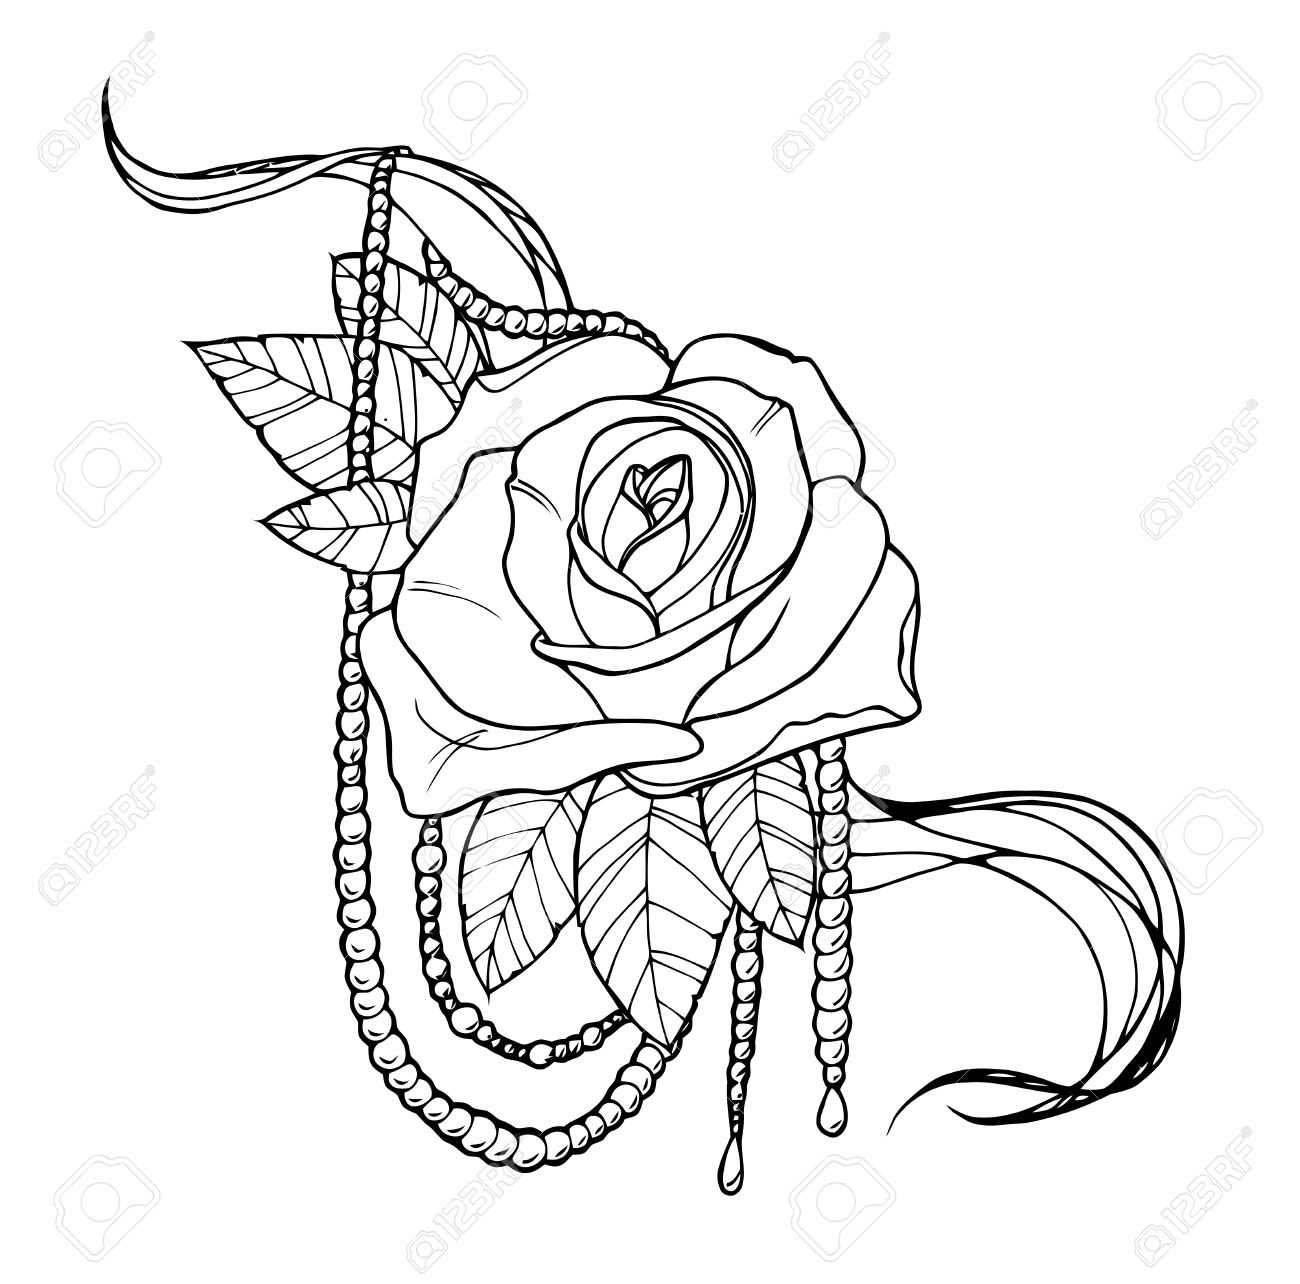 1300x1284 Beautiful Rose Tattoo, Outline Black And White Illustration